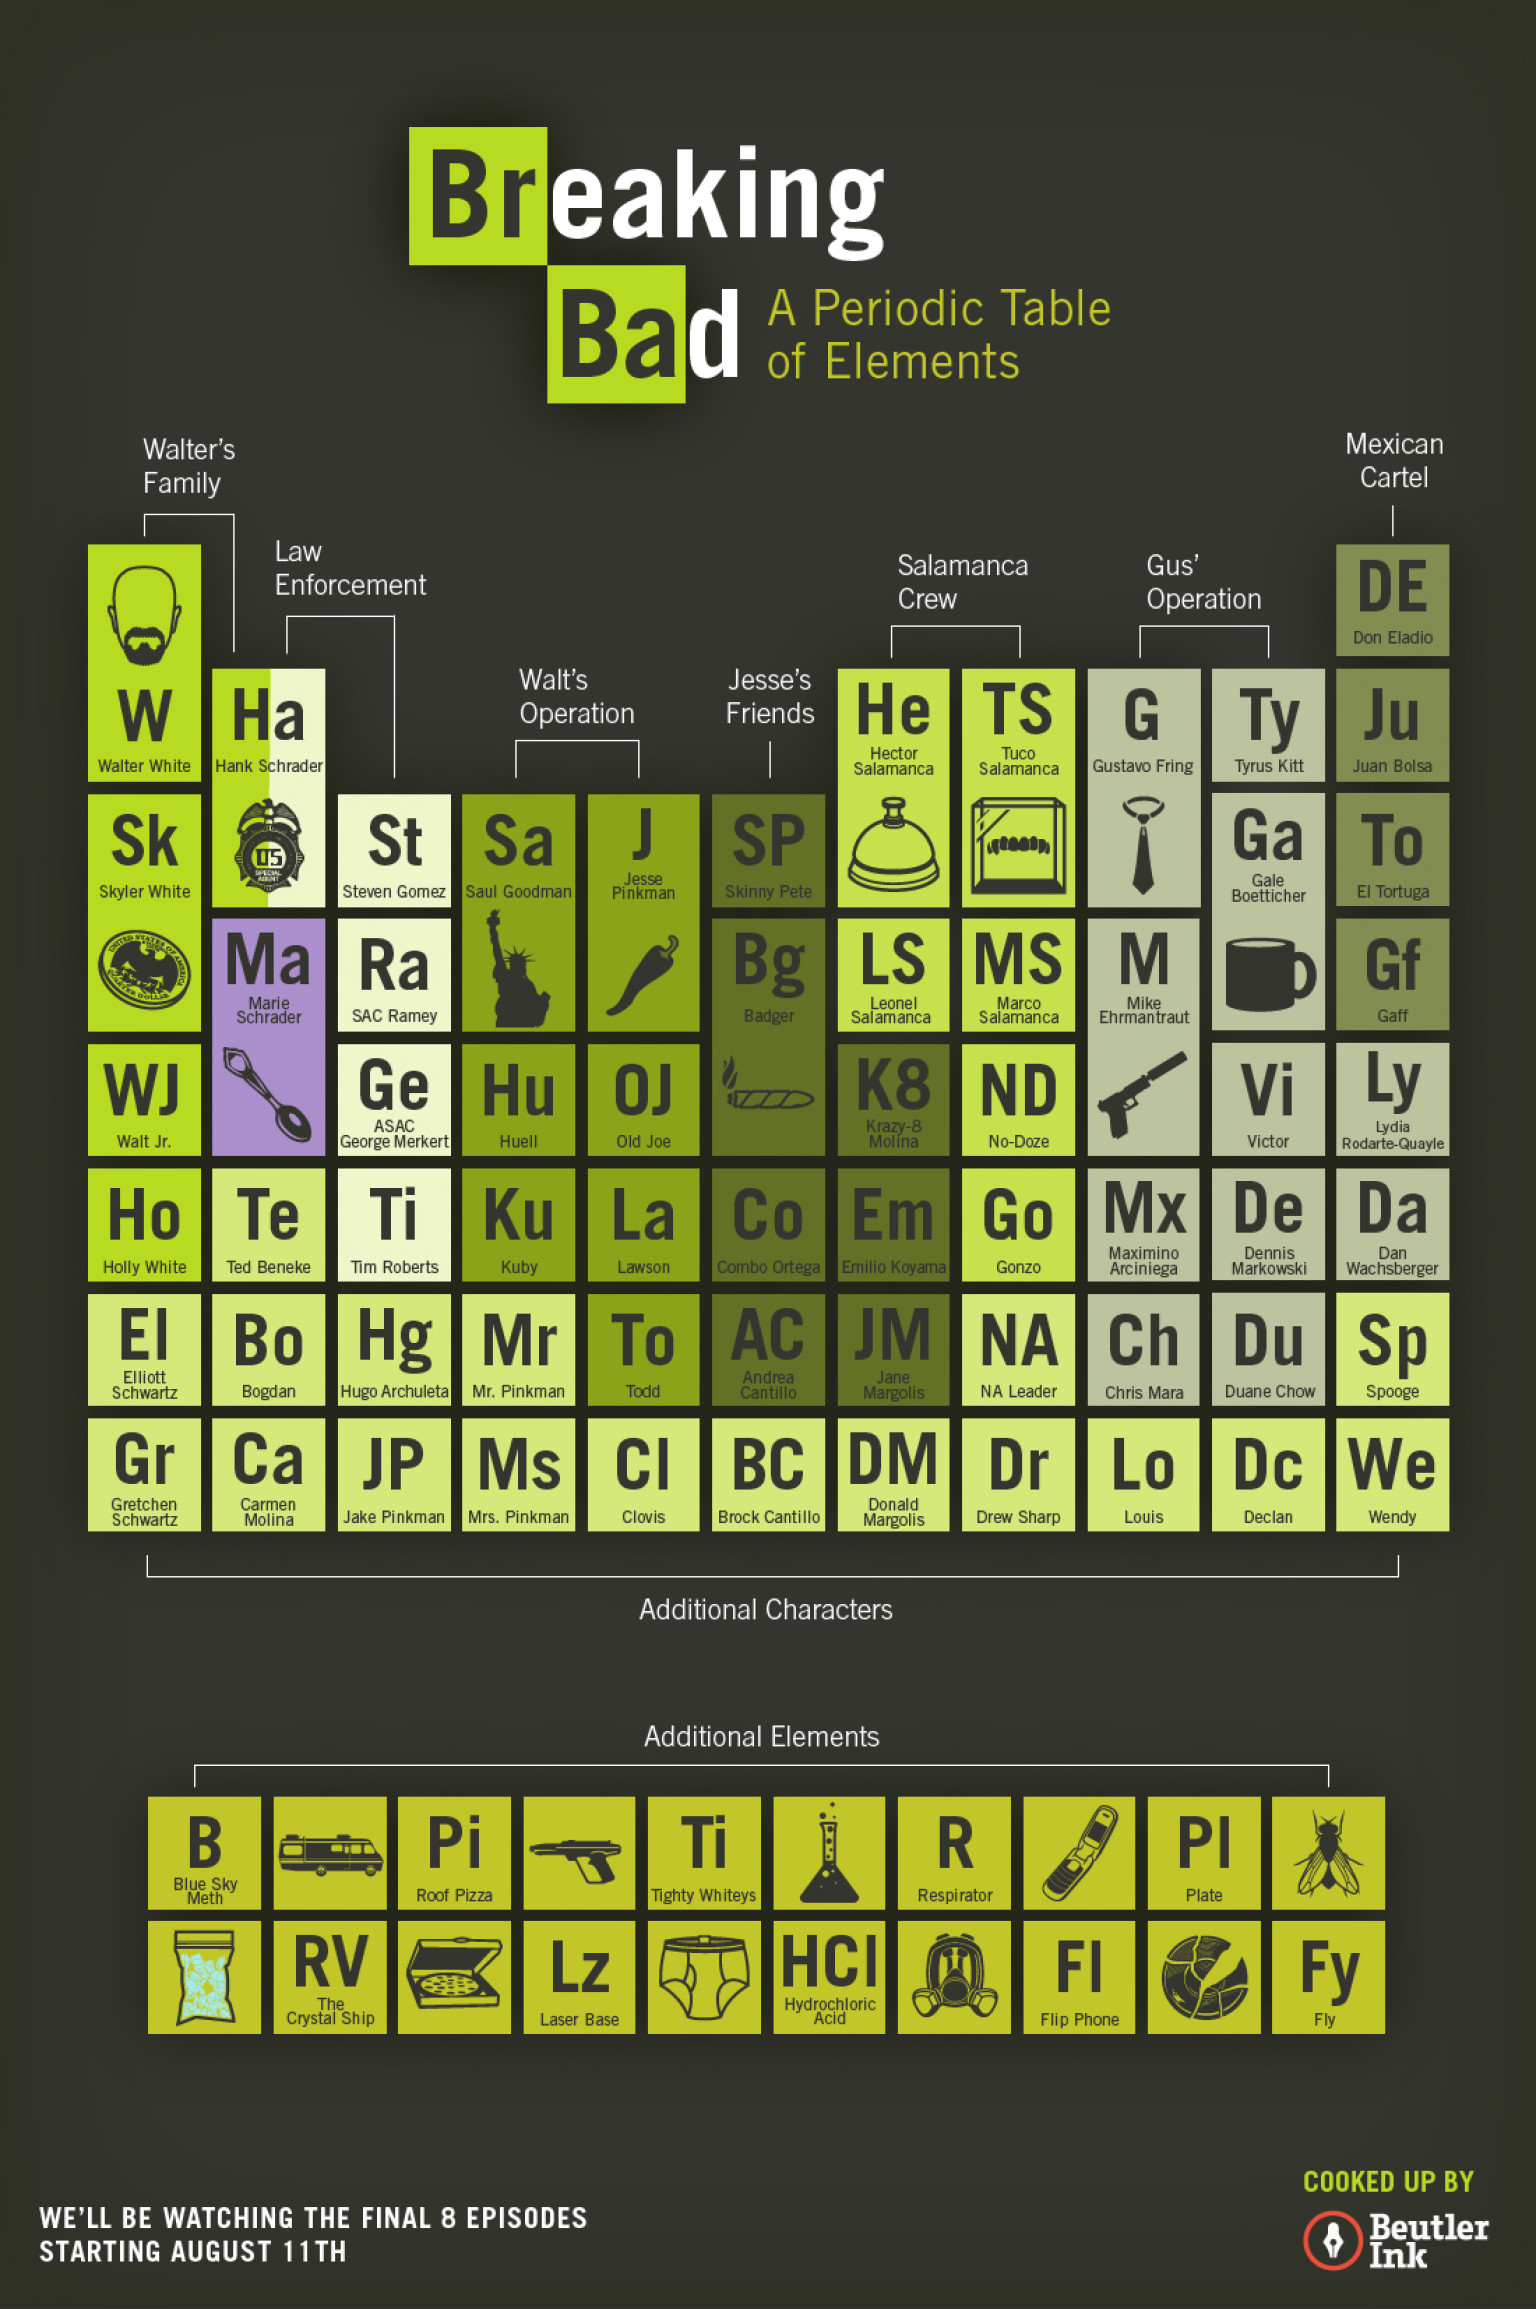 Breaking bad periodic table charting the elements of walt and breaking bad periodic table charting the elements of walt and jesses wonderful world of meth infographic huffpost urtaz